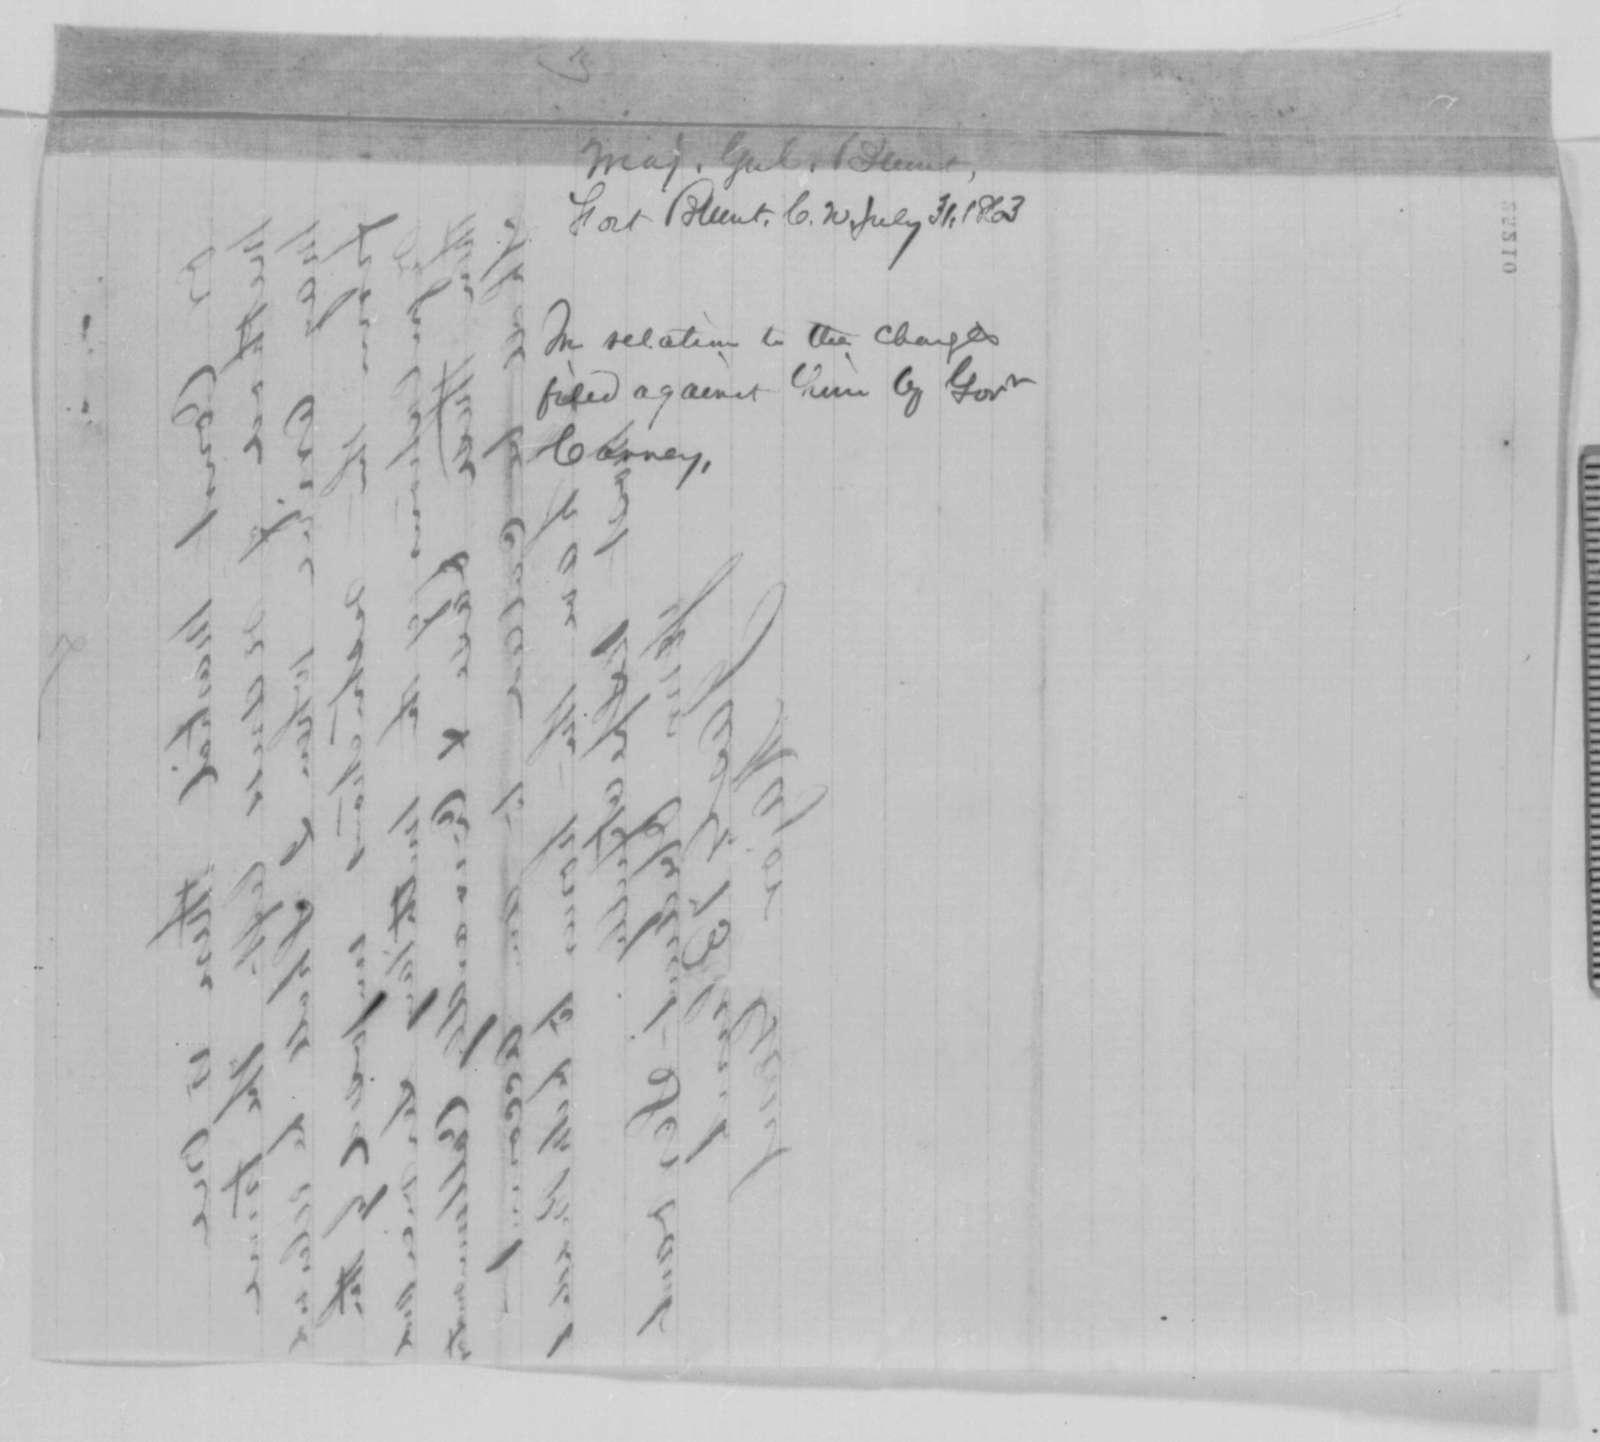 James G. Blunt to Abraham Lincoln, Friday, July 31, 1863  (Defends himself against charges made by Governor Carney)